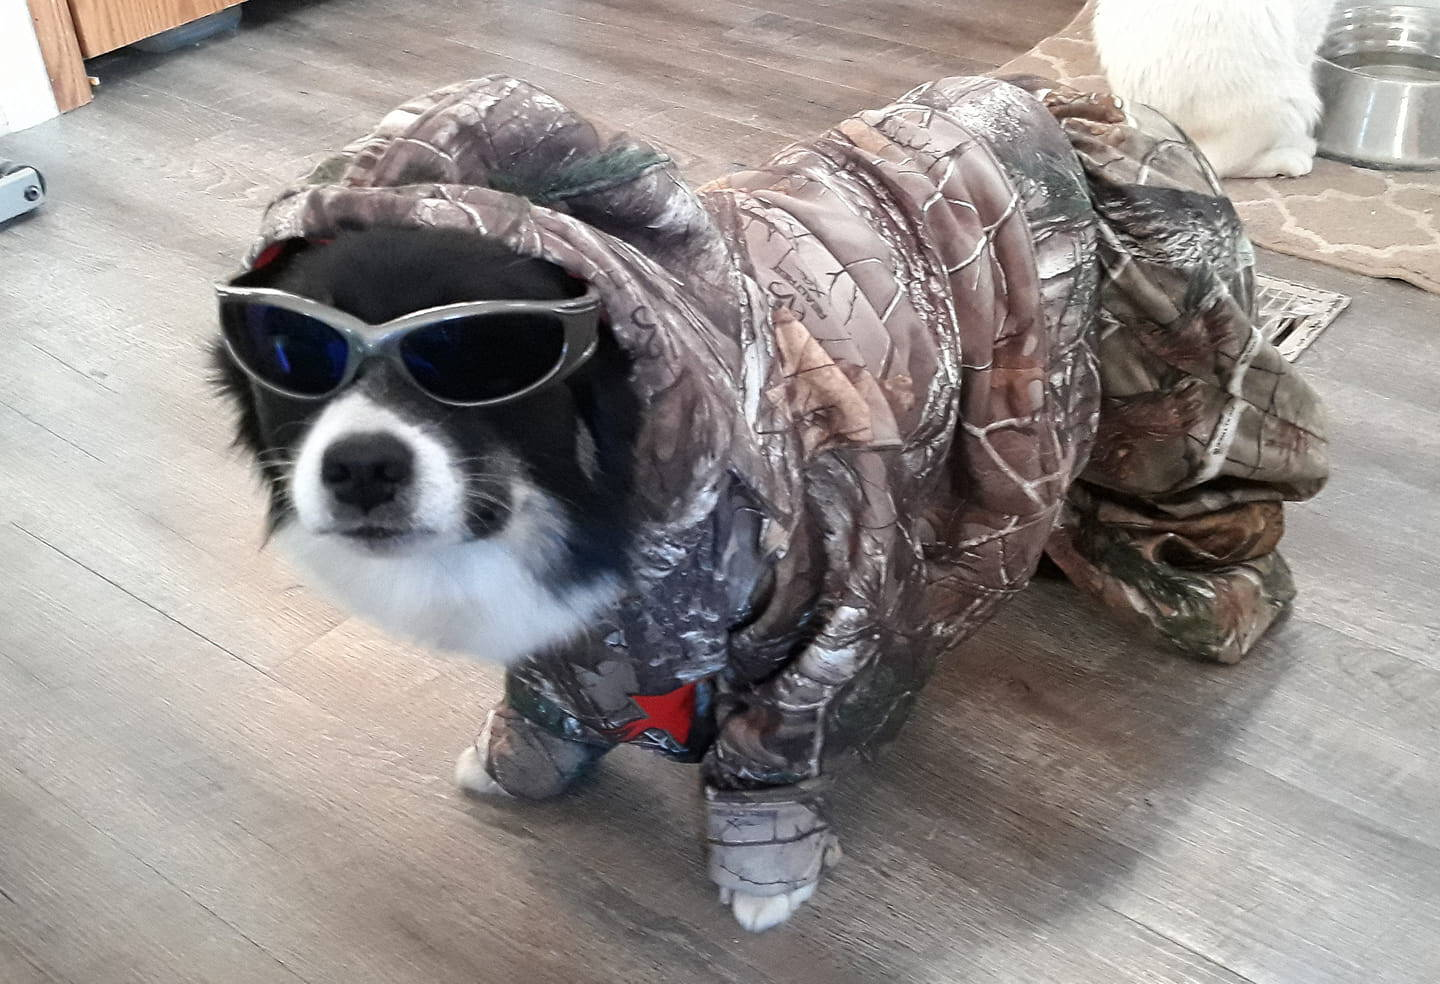 dog wearing sunglasses and camo sweatshirt